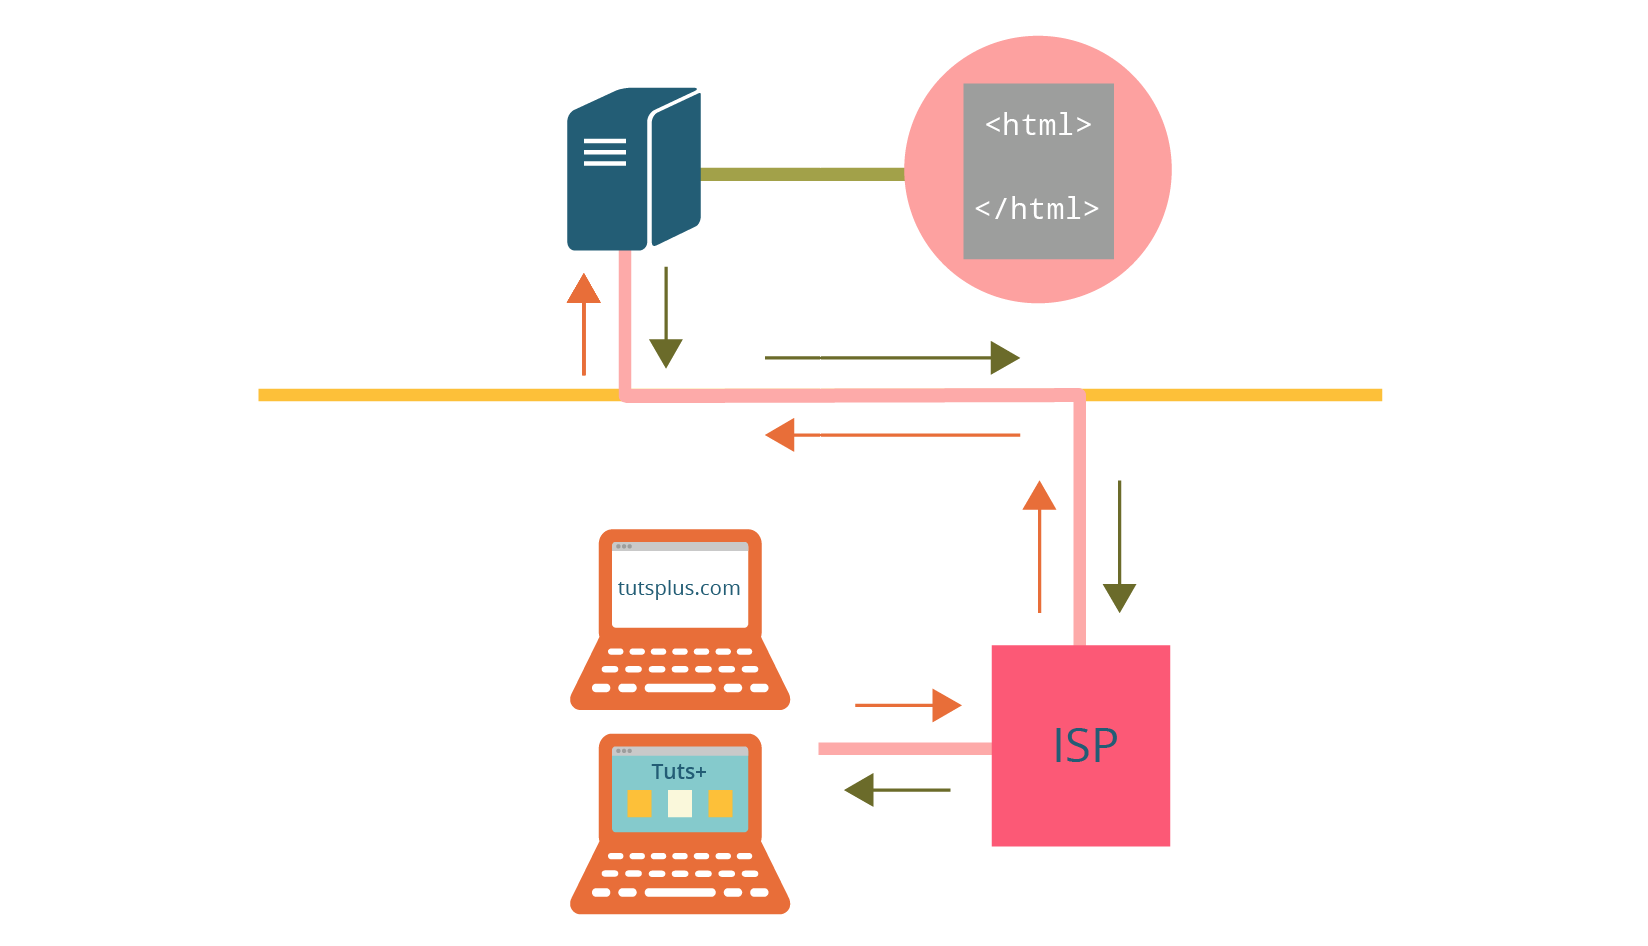 How the web works illustration